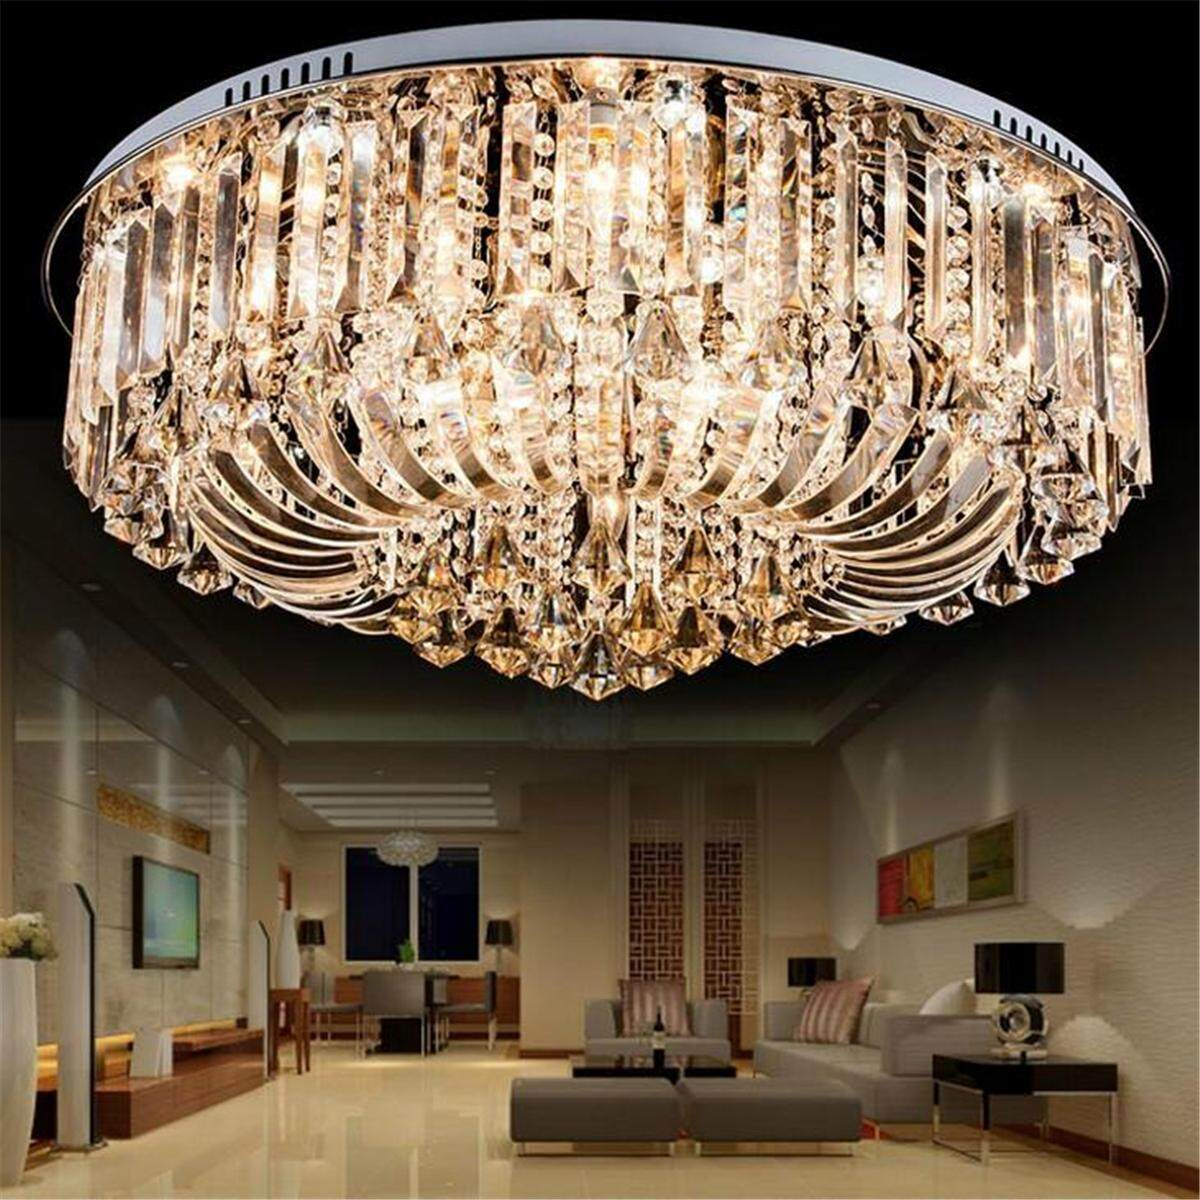 Home Ceiling Lights - Buy Home Ceiling Lights at Best Price in ...